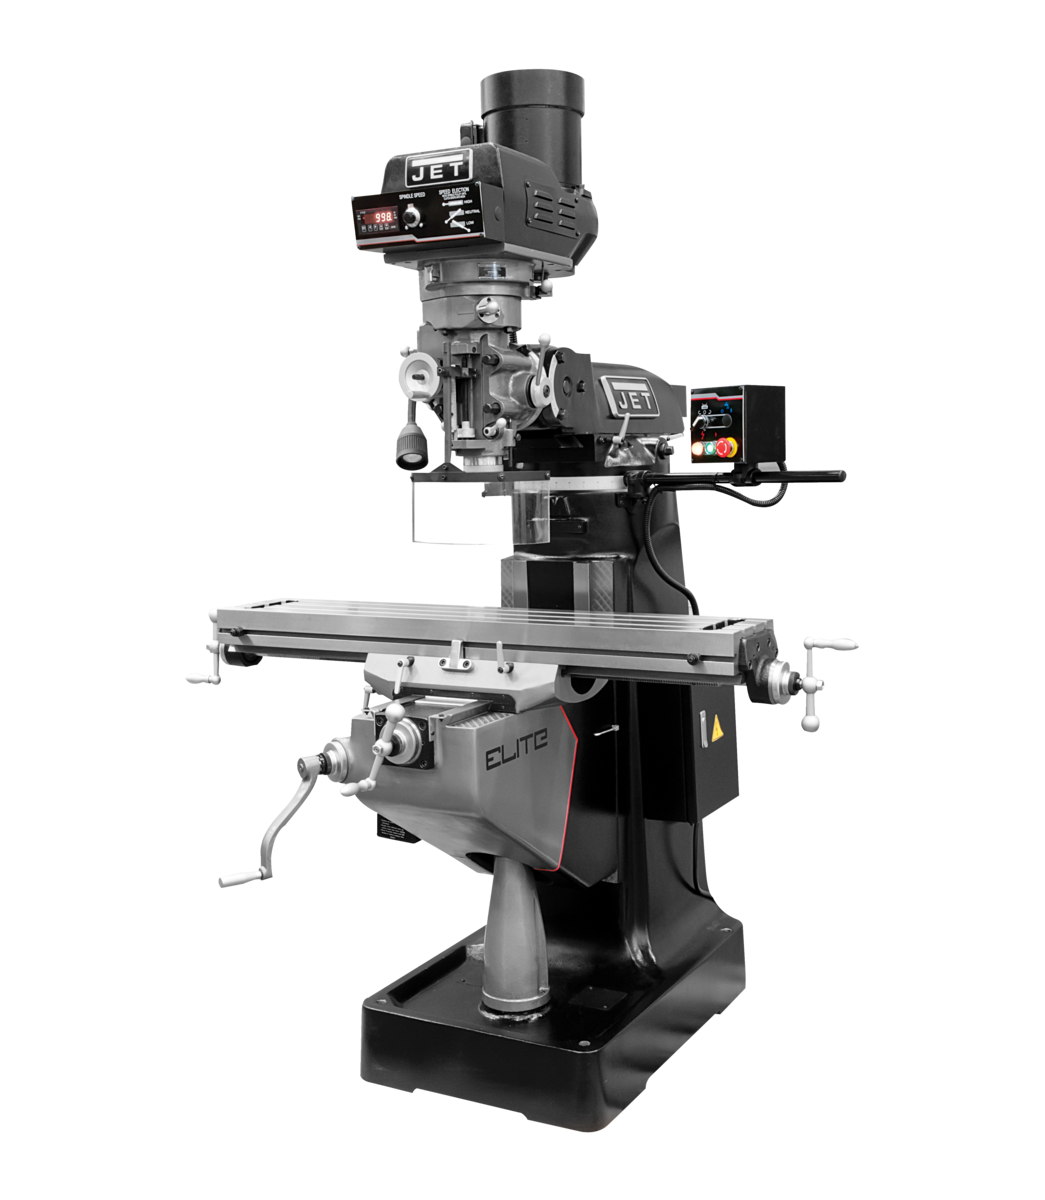 EVS-949 Mill with 2-Axis Newall DP700 DRO and X-Axis JET Powerfeed